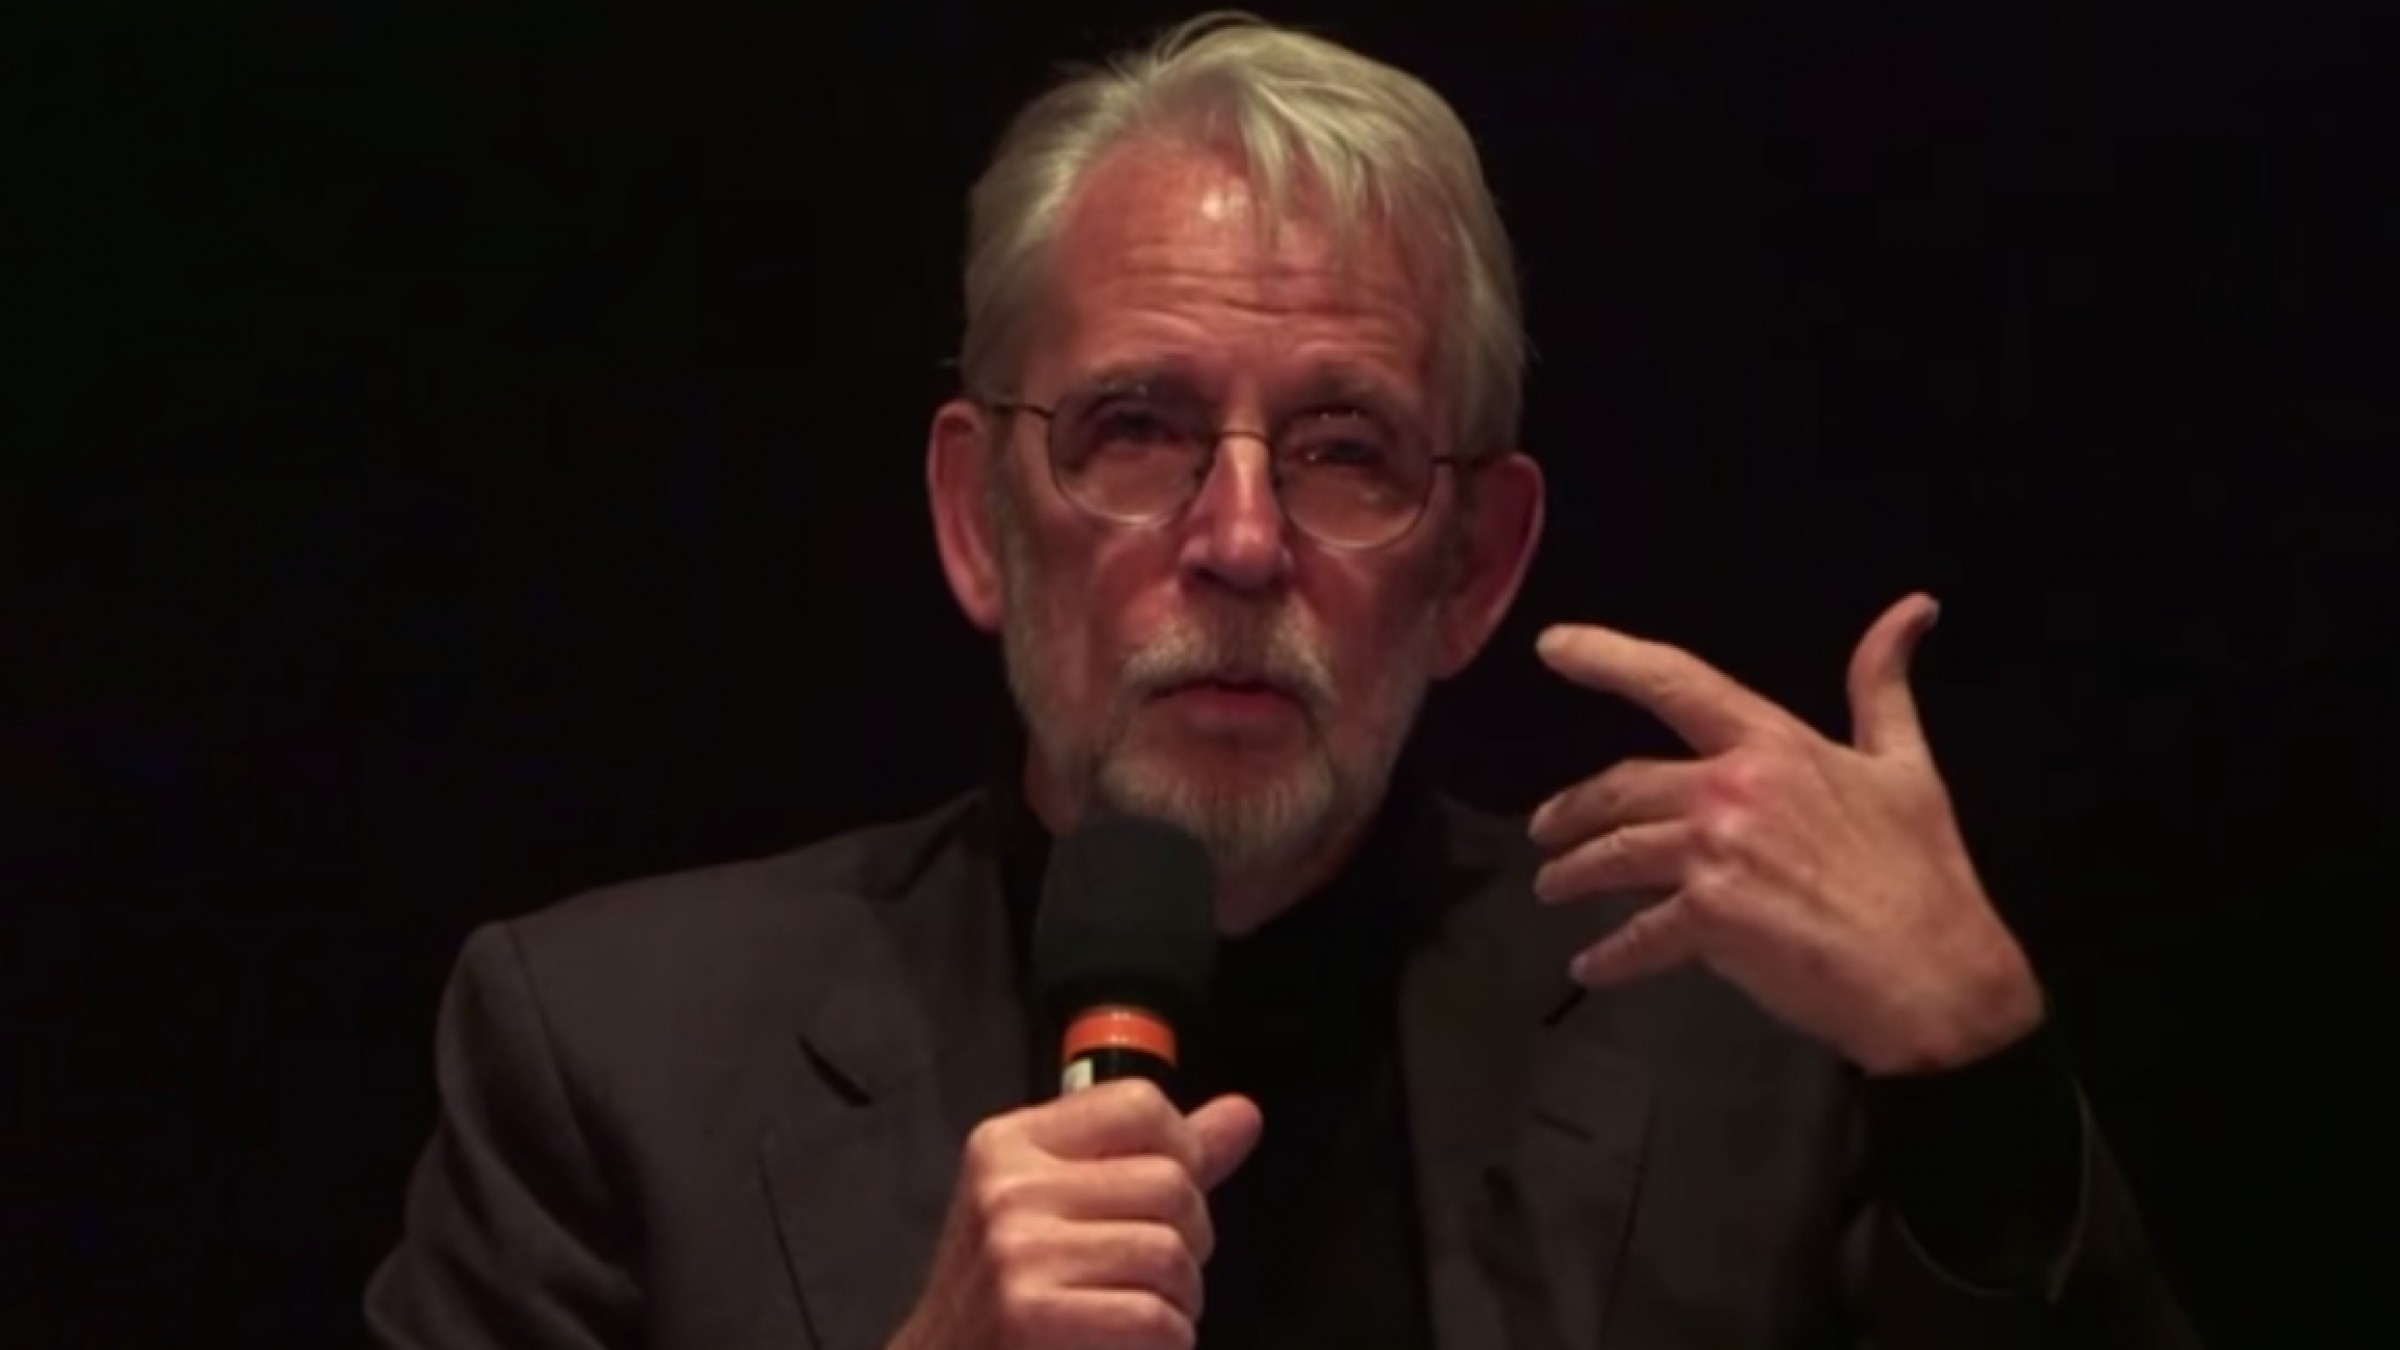 Walter Murch & Jon Favreau Discuss the Science Behind the Way We Perceive Movies